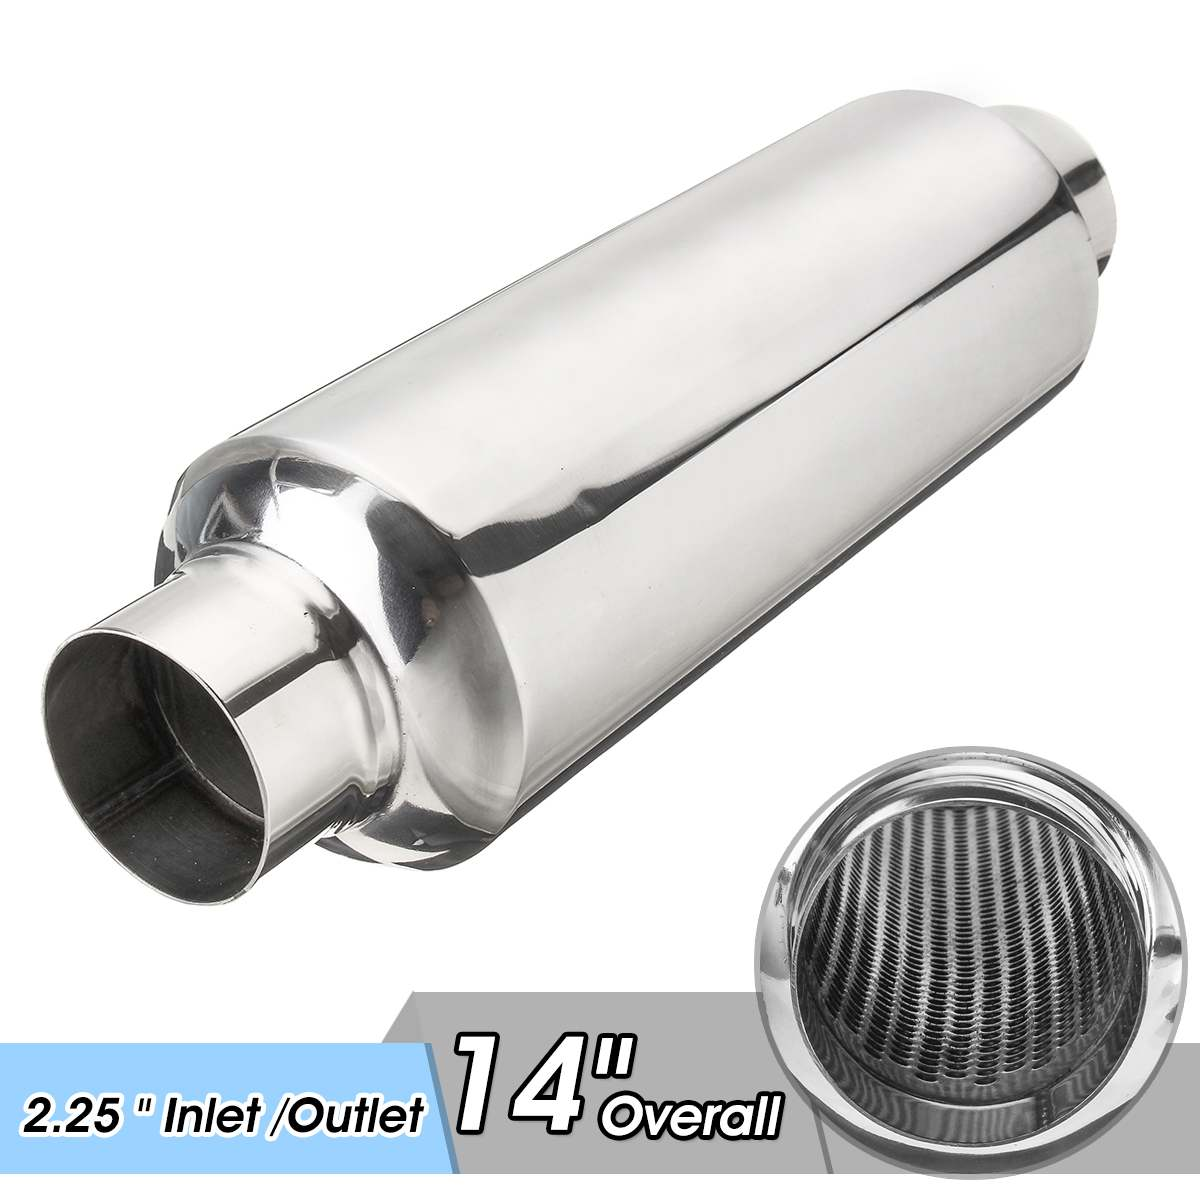 Universal Car Exhaust Muffler Resonator 2.25 Inlet/Outlet Exhaust Tip Pipe Tube Stainless SteelUniversal Car Exhaust Muffler Resonator 2.25 Inlet/Outlet Exhaust Tip Pipe Tube Stainless Steel